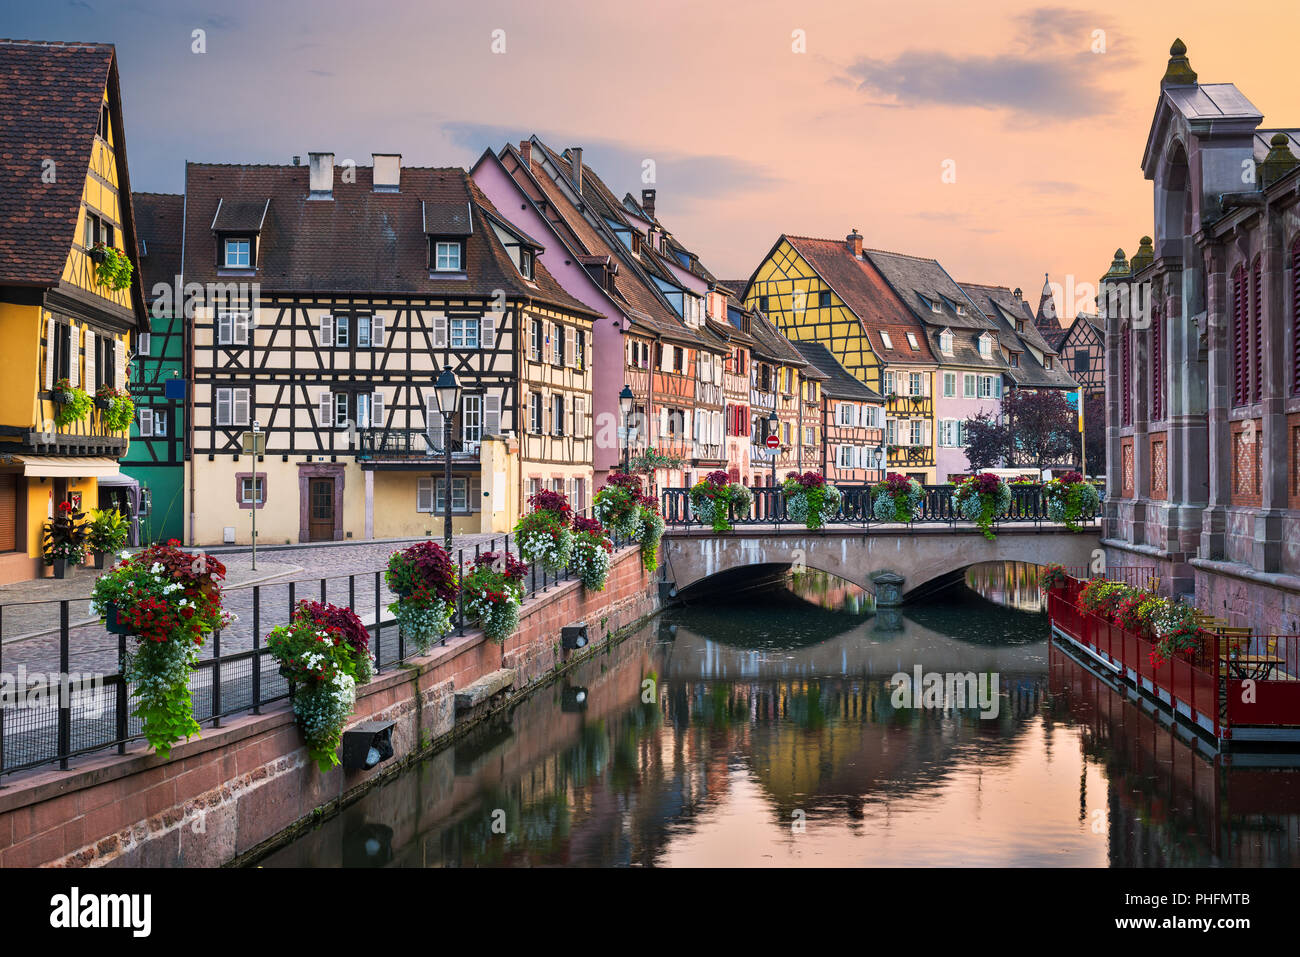 Elsass Karte Colmar.Evening In The Old Town Of Colmar Alsace France Stock Photo